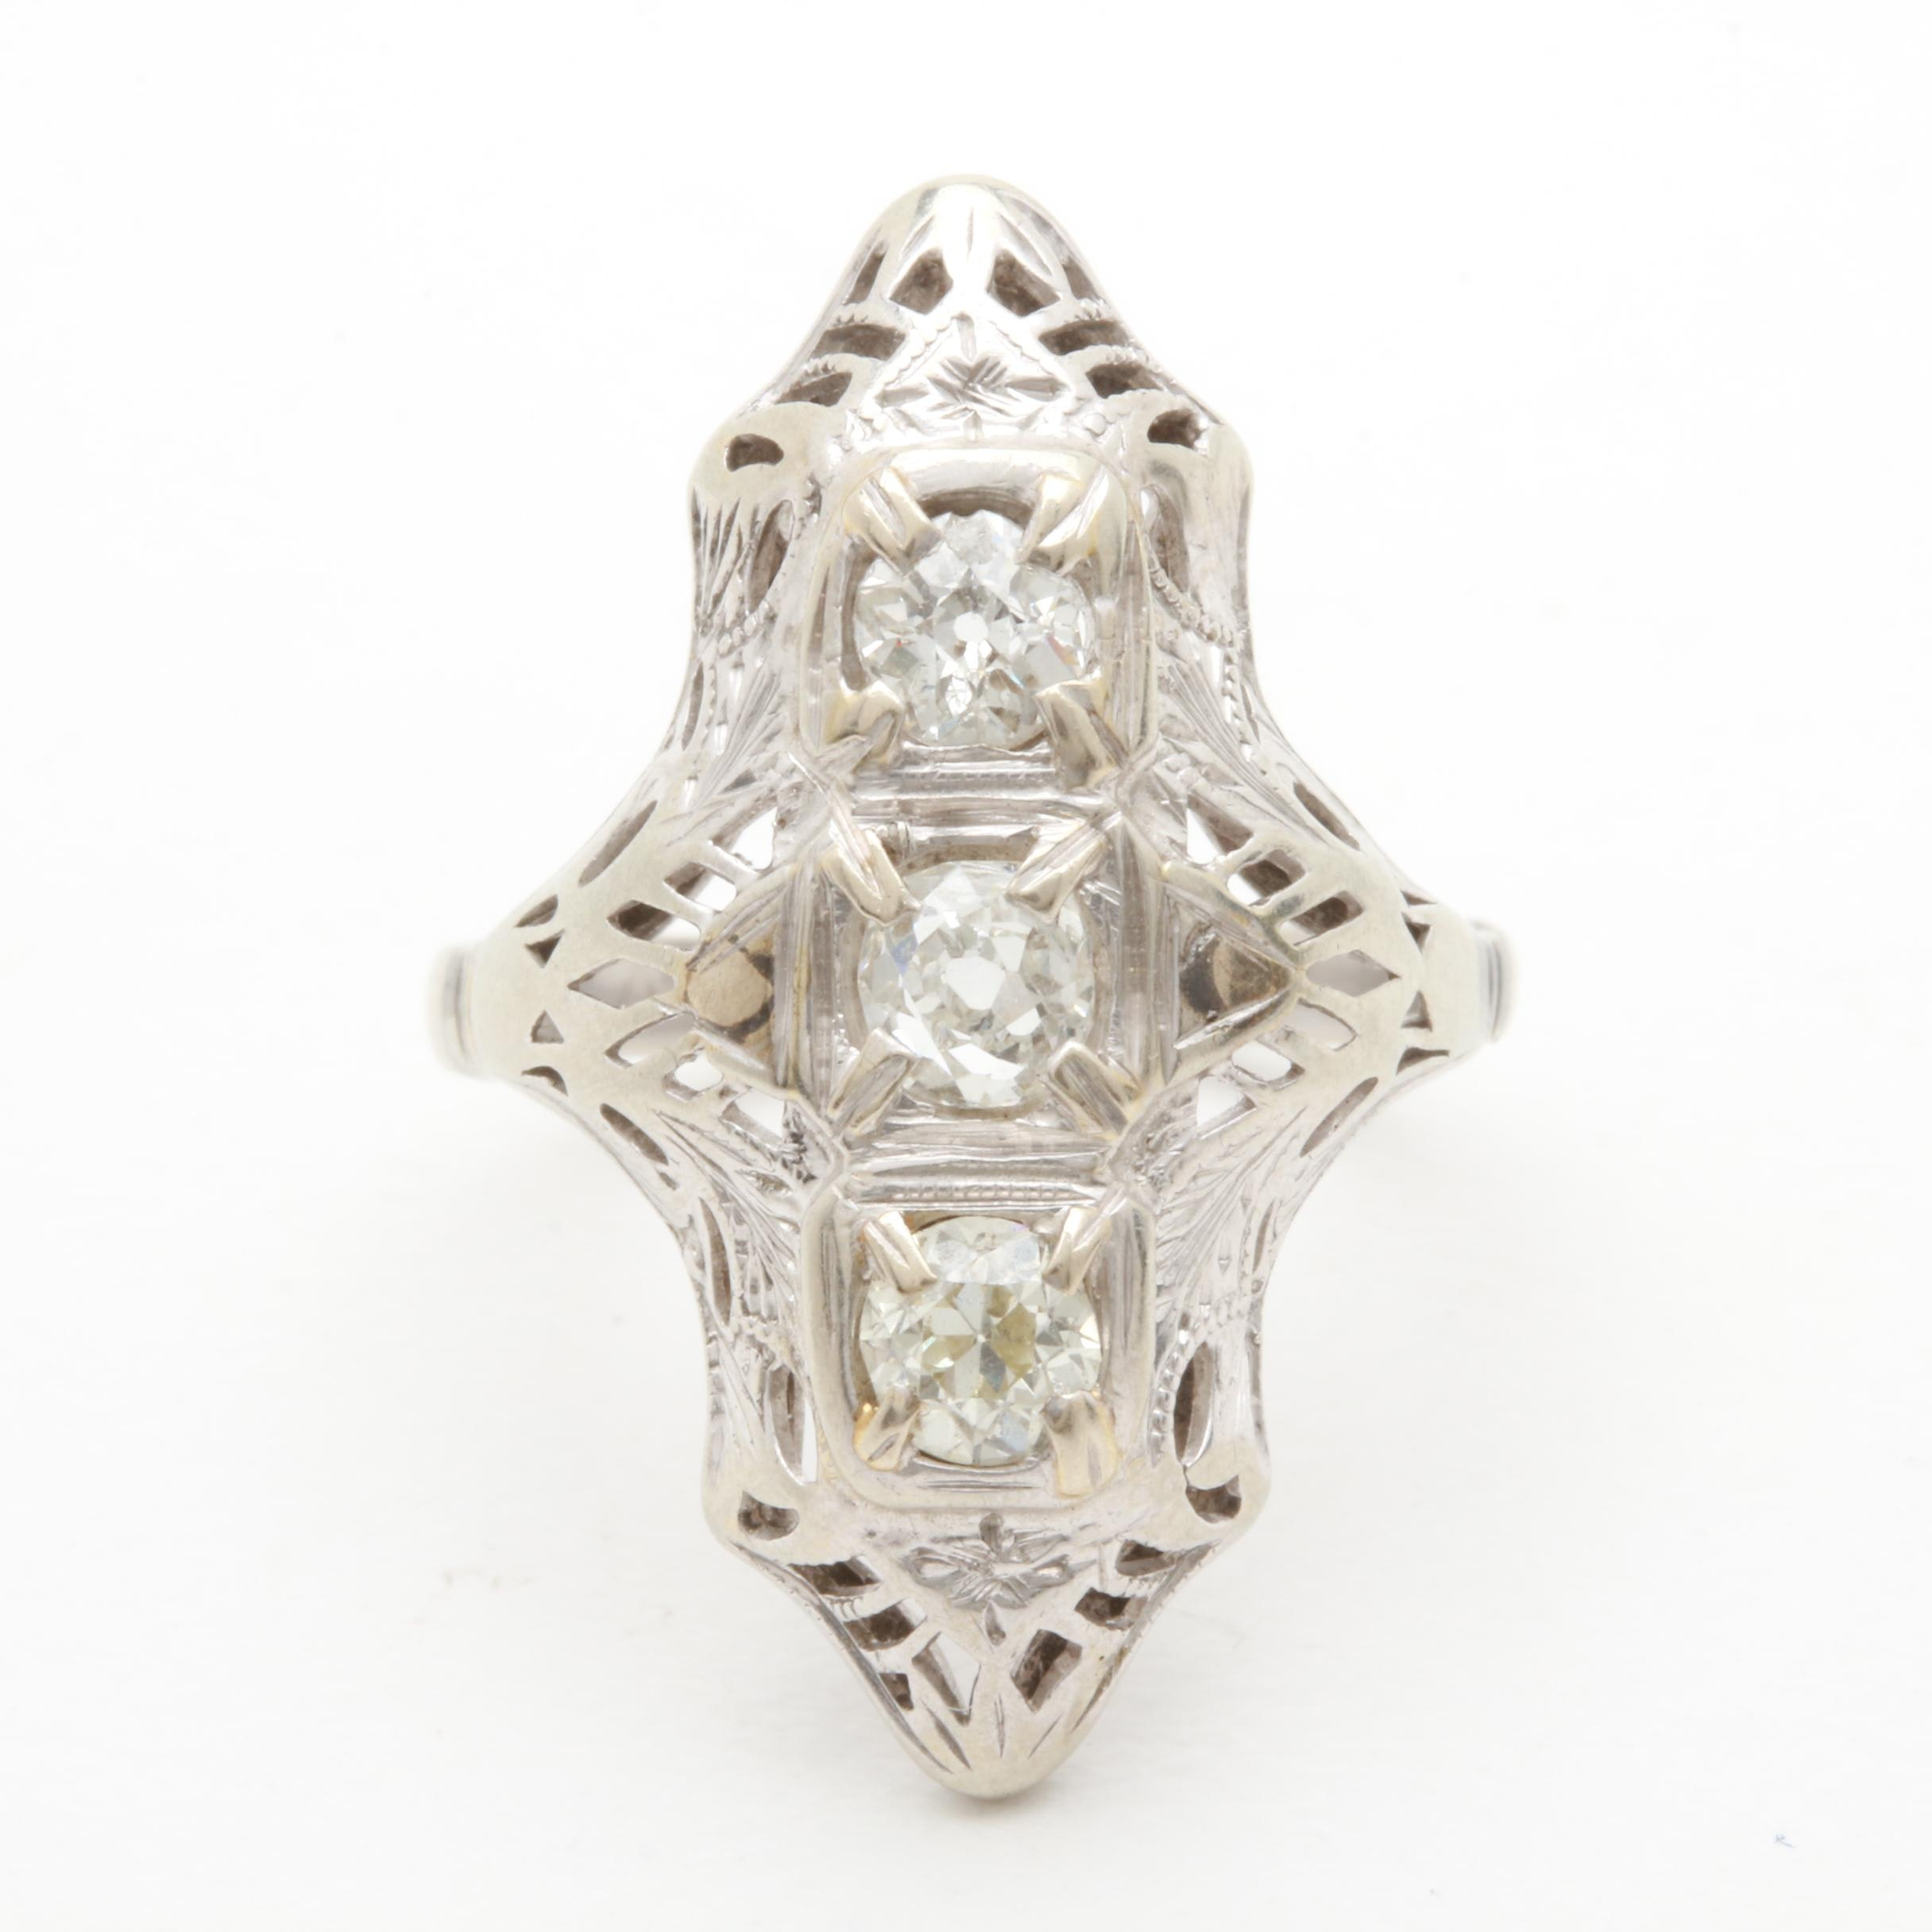 Edwardian 14K and 18K White Gold Diamond Ring